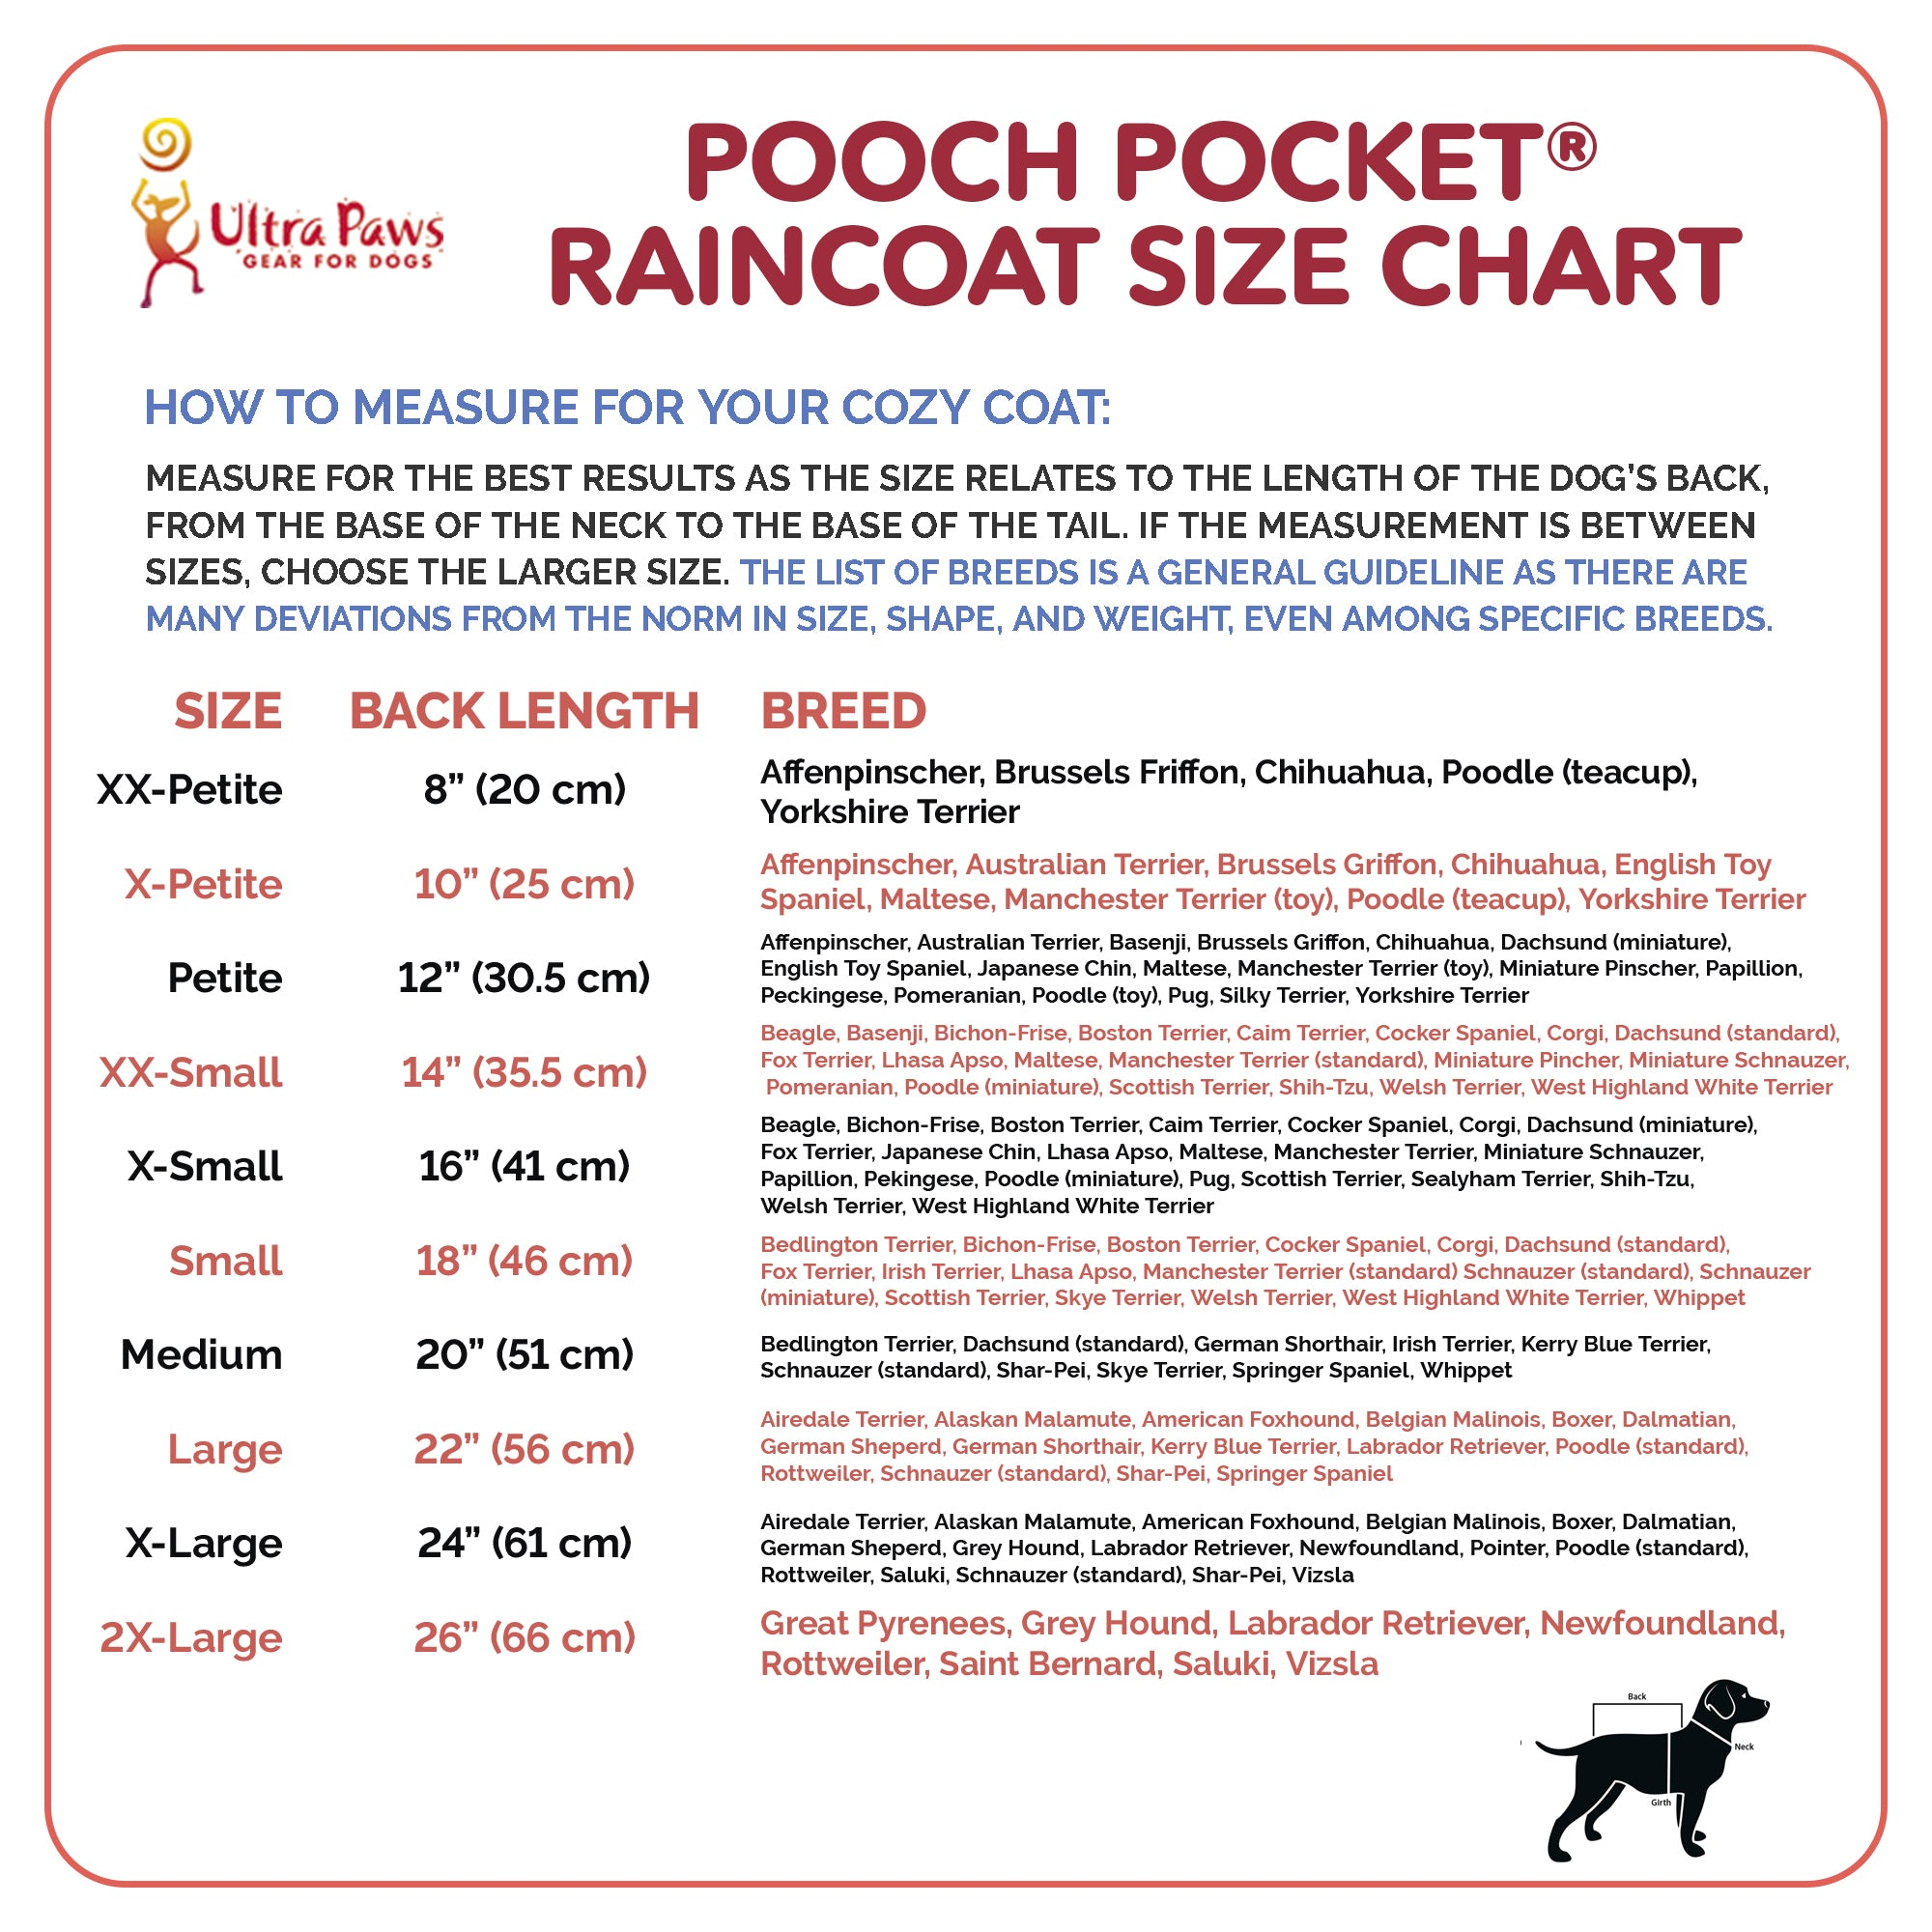 Ultra Paws Pooch Pocket Raincoat Sizing Chart